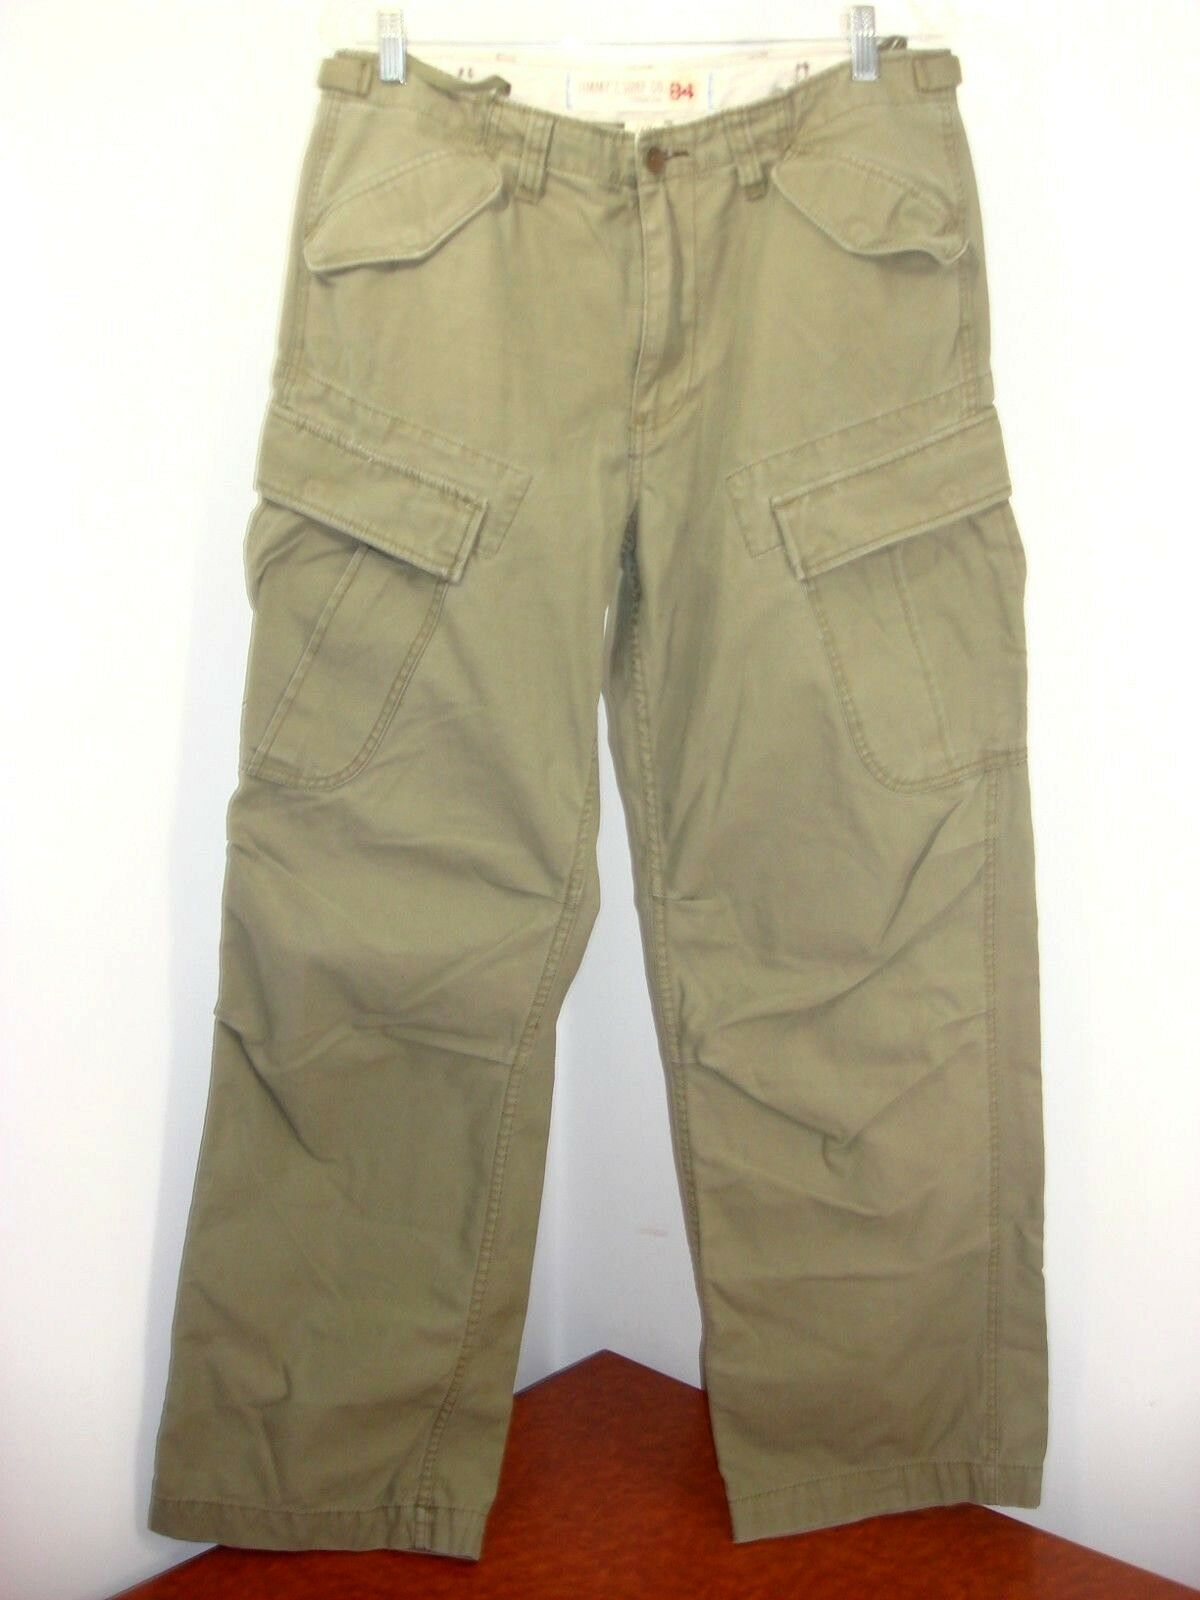 Jimmy'z Surf Co. 84 Standard Issue Cotton Cargo Pants Tag 32 R Measures 34 x 32